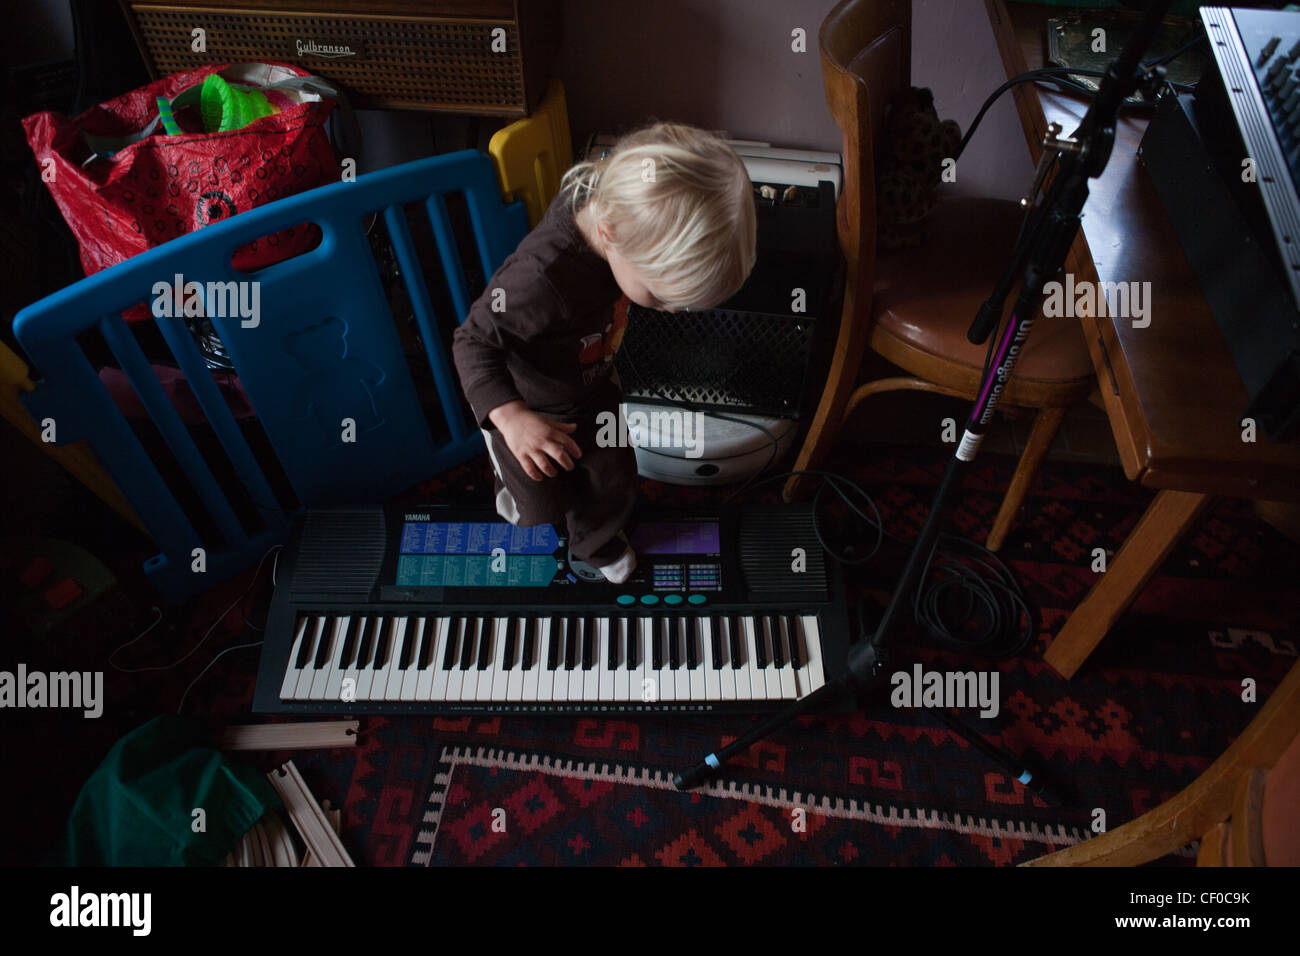 One year old boy stepping on his parents' musical equipment, keyboard and drum machine. - Stock Image